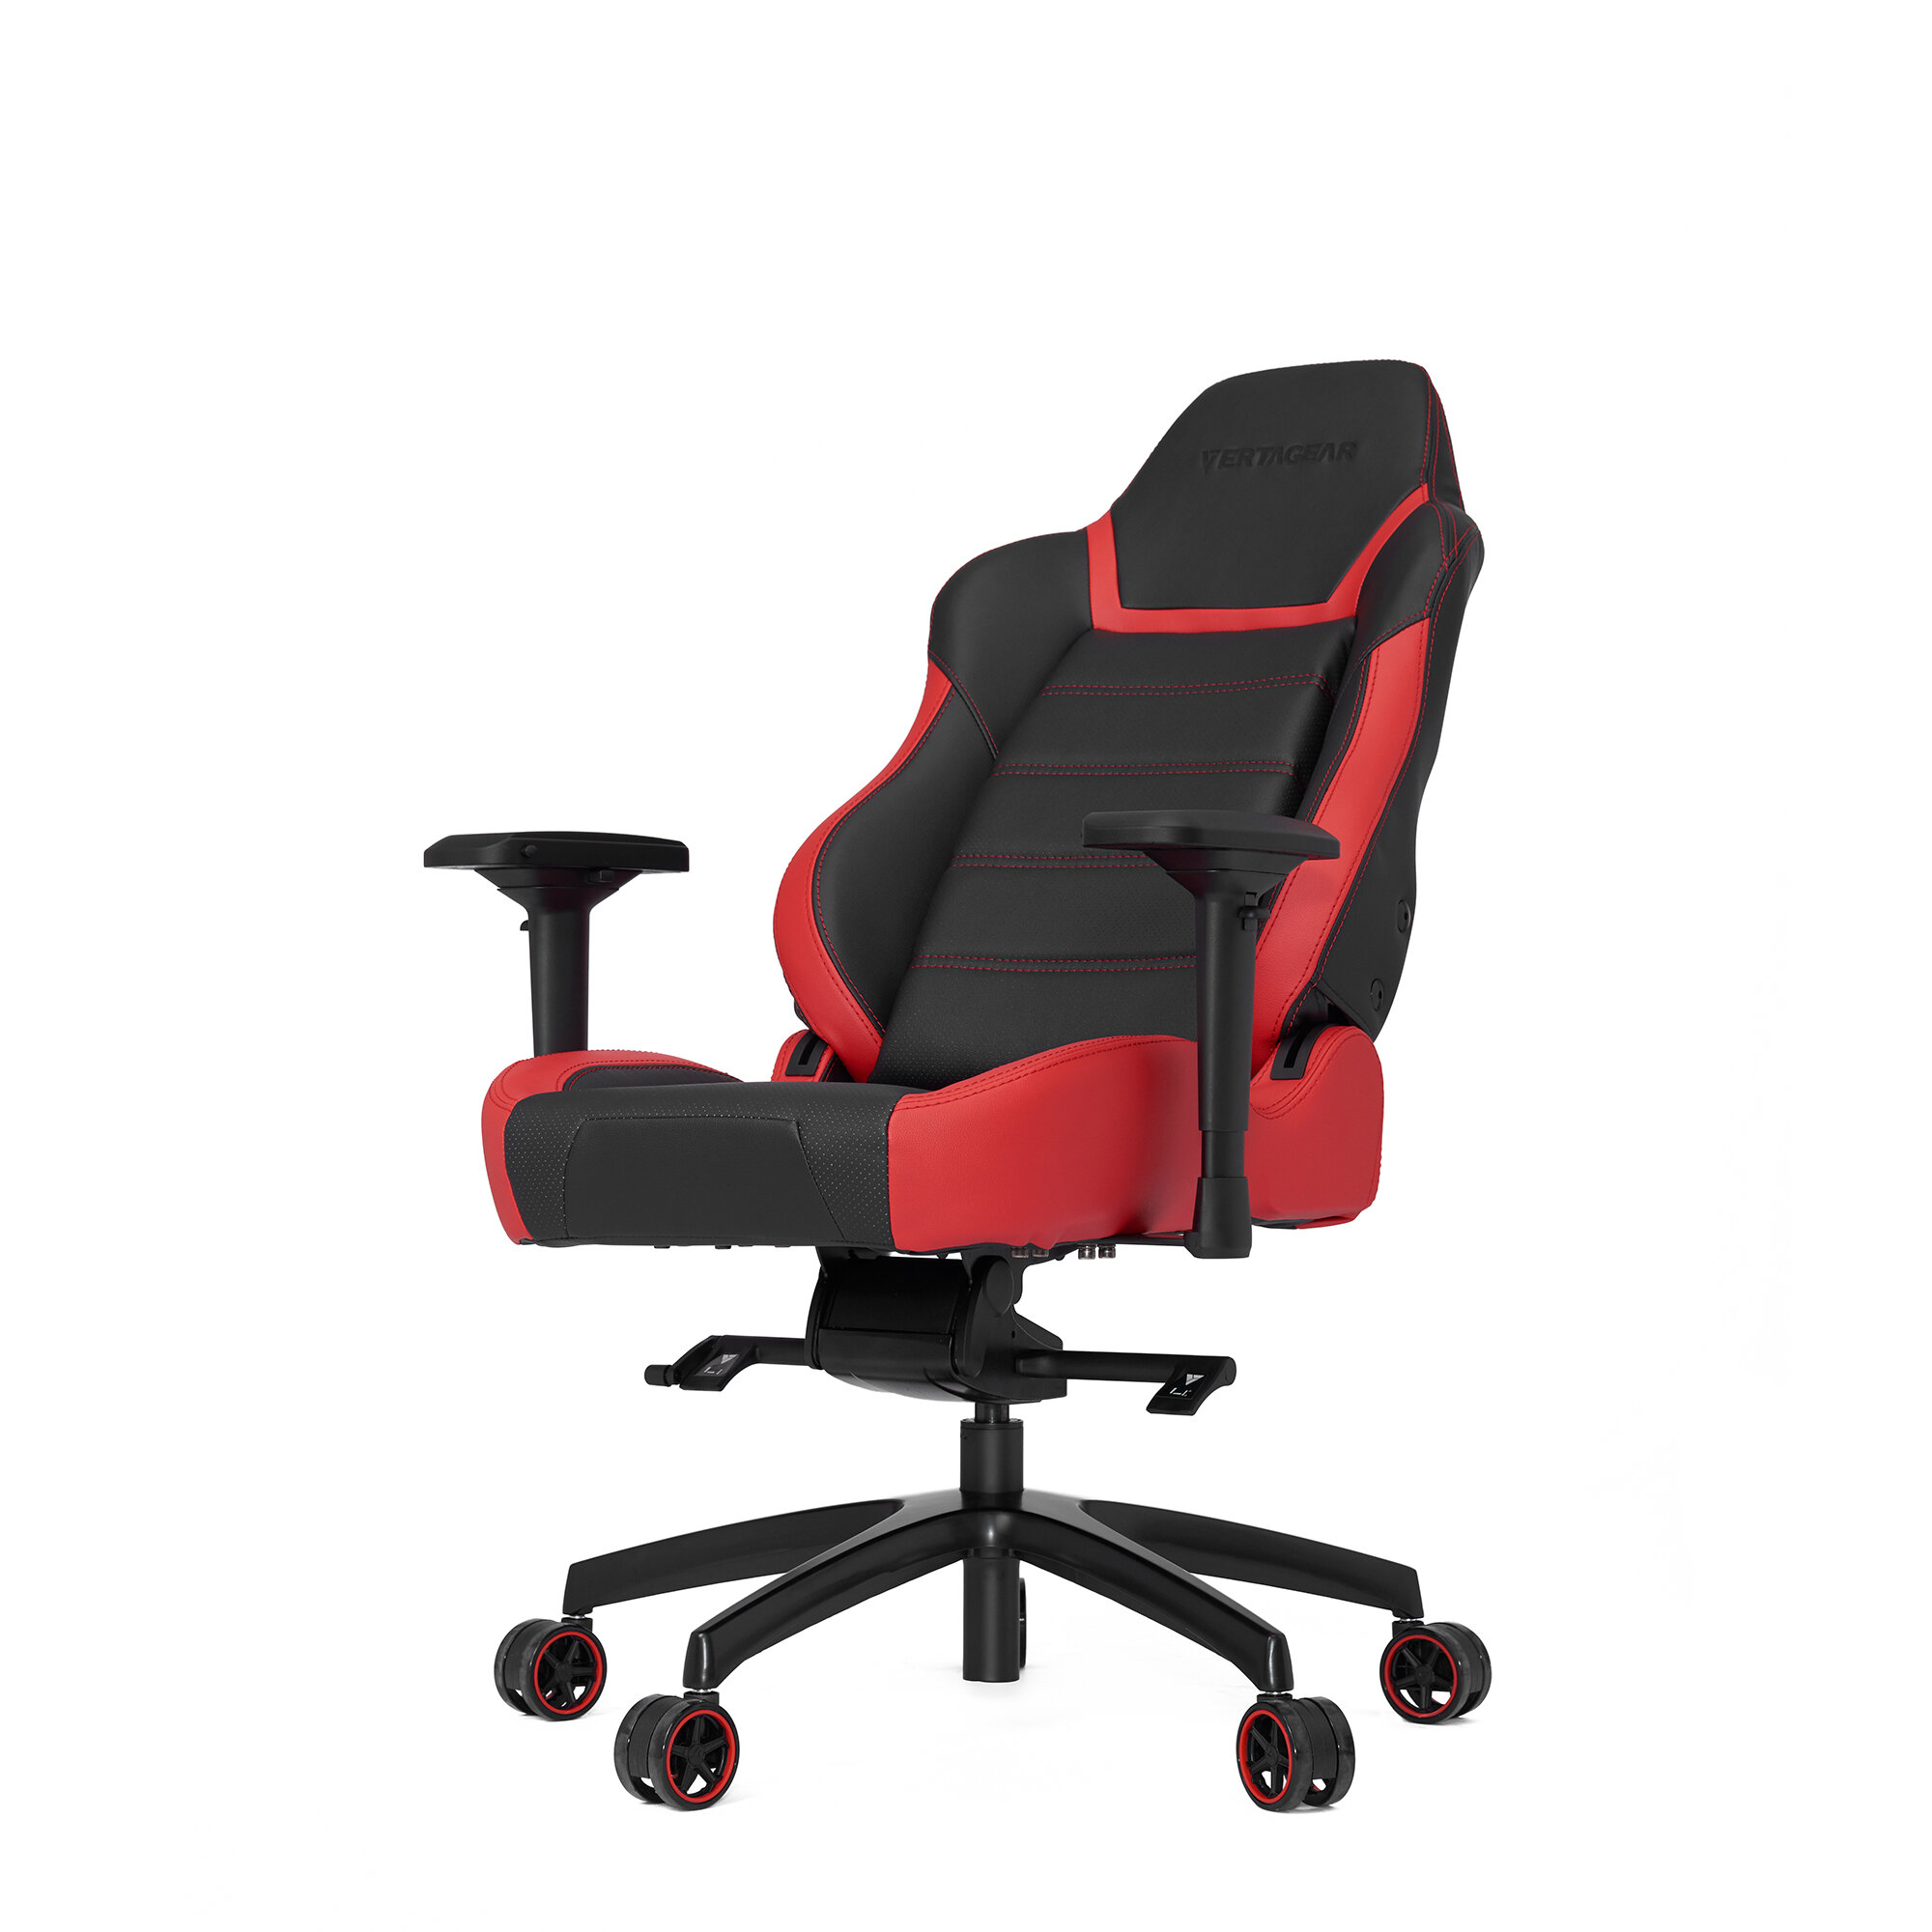 Vertagear High Back Gaming Office Chair With Arms Ebay